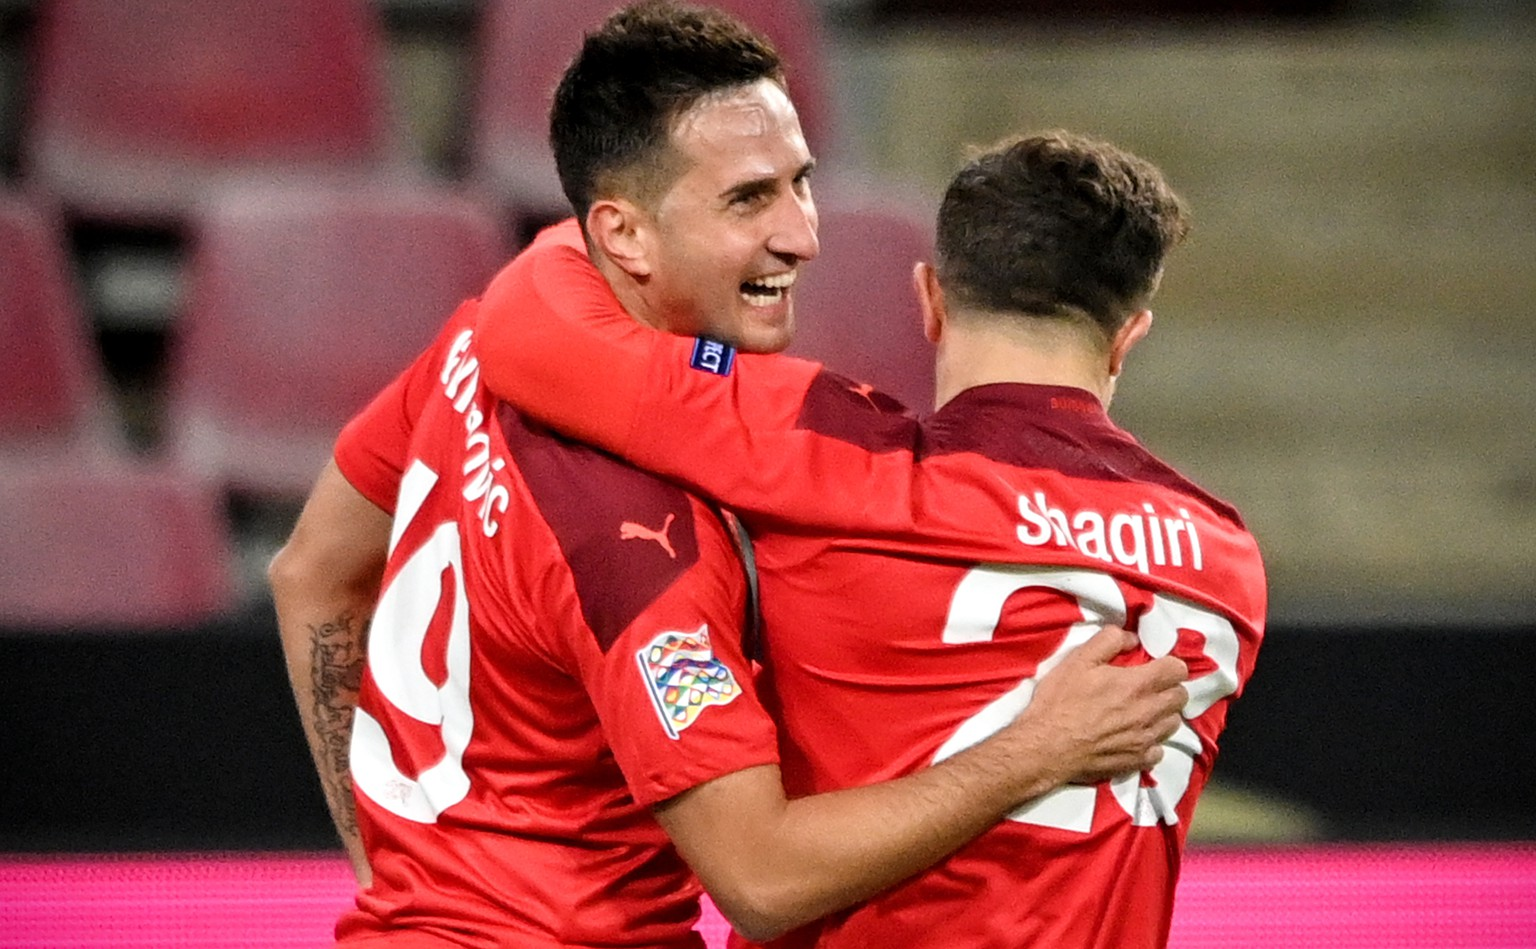 epa08741617 Switzerland's Mario Gavranovic (L) celebrates with his teammate Xherdan Shaqiri (R) after scoring the 1-0 lead during the UEFA Nations League group stage, league A, group 4 soccer match  between Germany and Switzerland in Cologne, Germany, 13 October 2020.  EPA/SASCHA STEINBACH